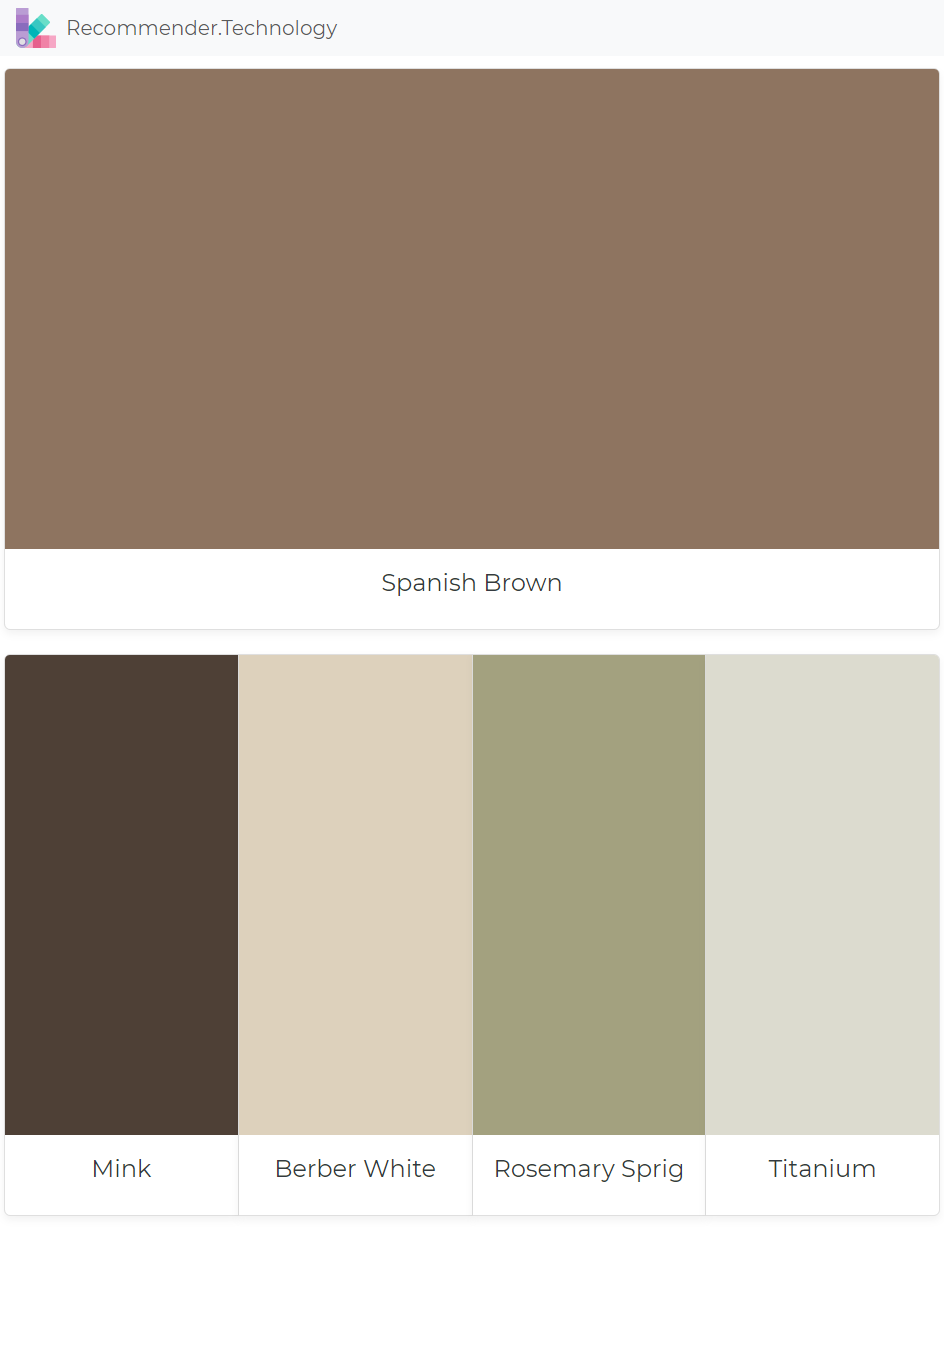 Spanish Brown Mink Berber White Rosemary Sprig Anium Paint Color Palettes